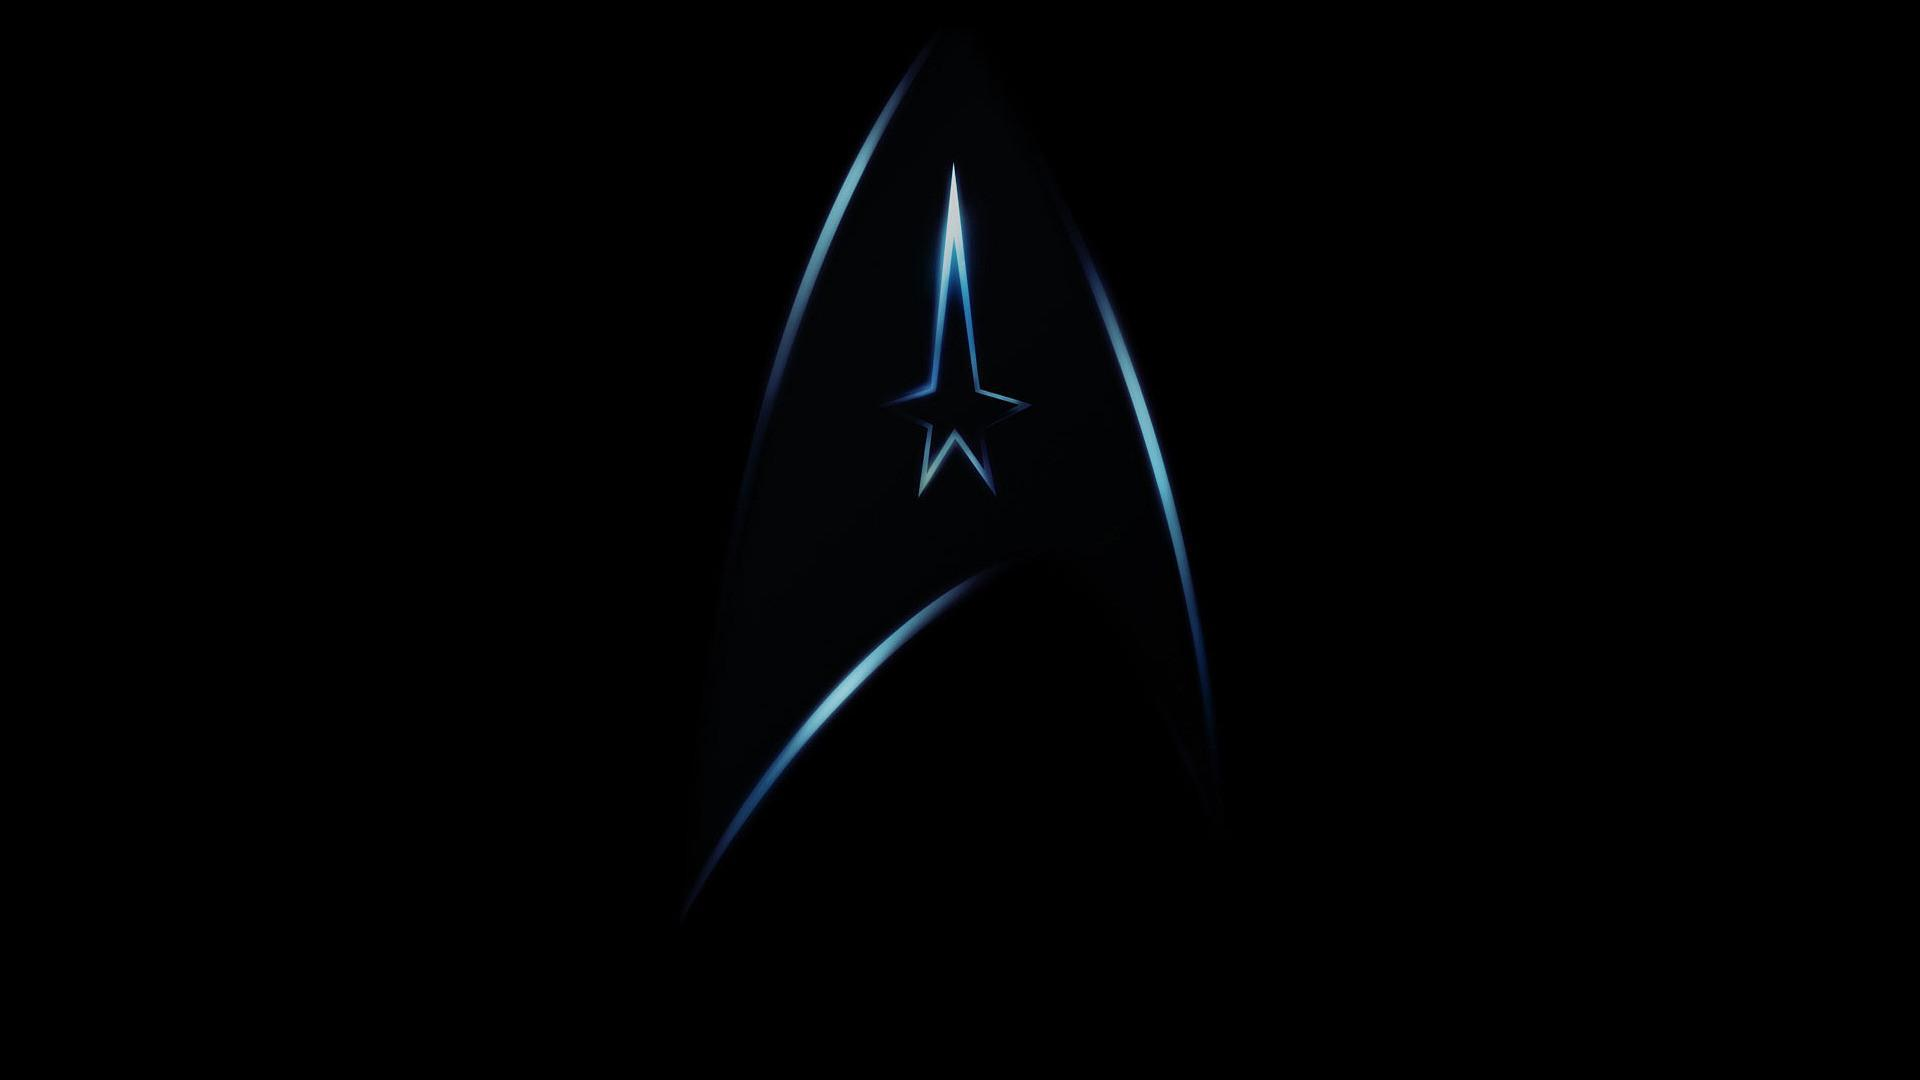 20228 download wallpaper Cinema, Background, Logos, Star Trek screensavers and pictures for free